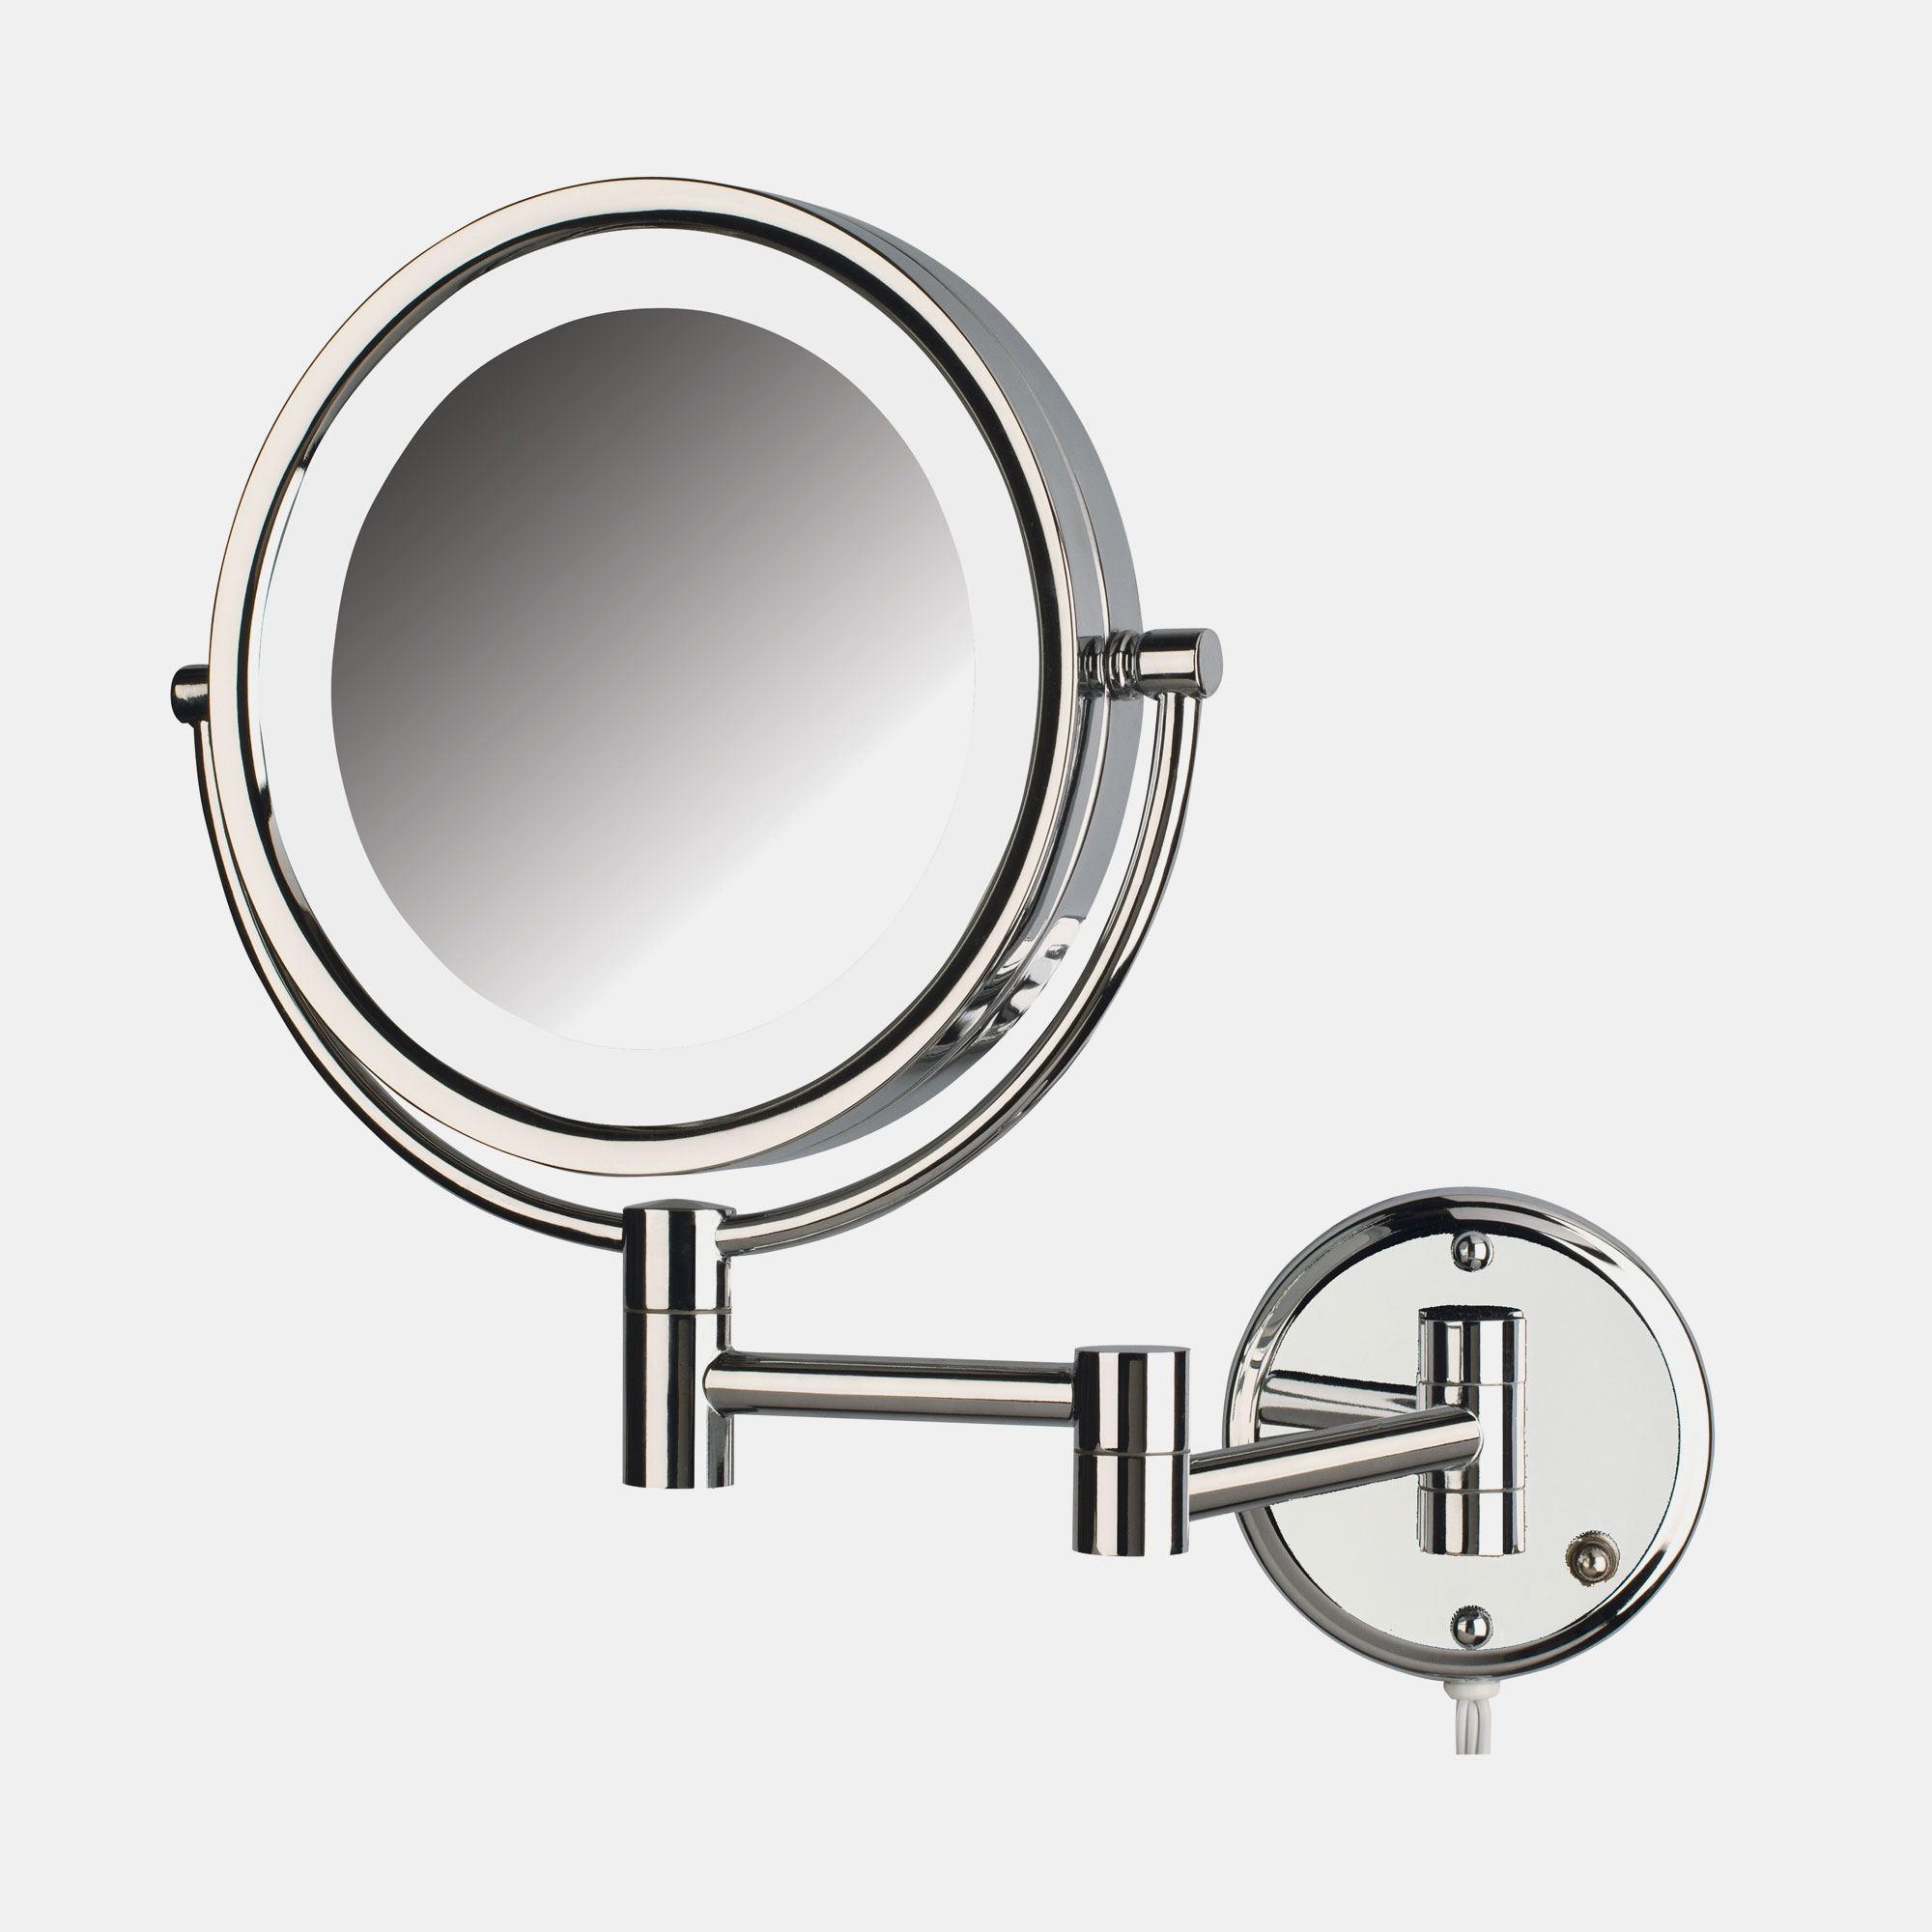 Jerdon Hl88cl 8 5 Quot Led Lighted Wall Mount Mirror 1x 8x